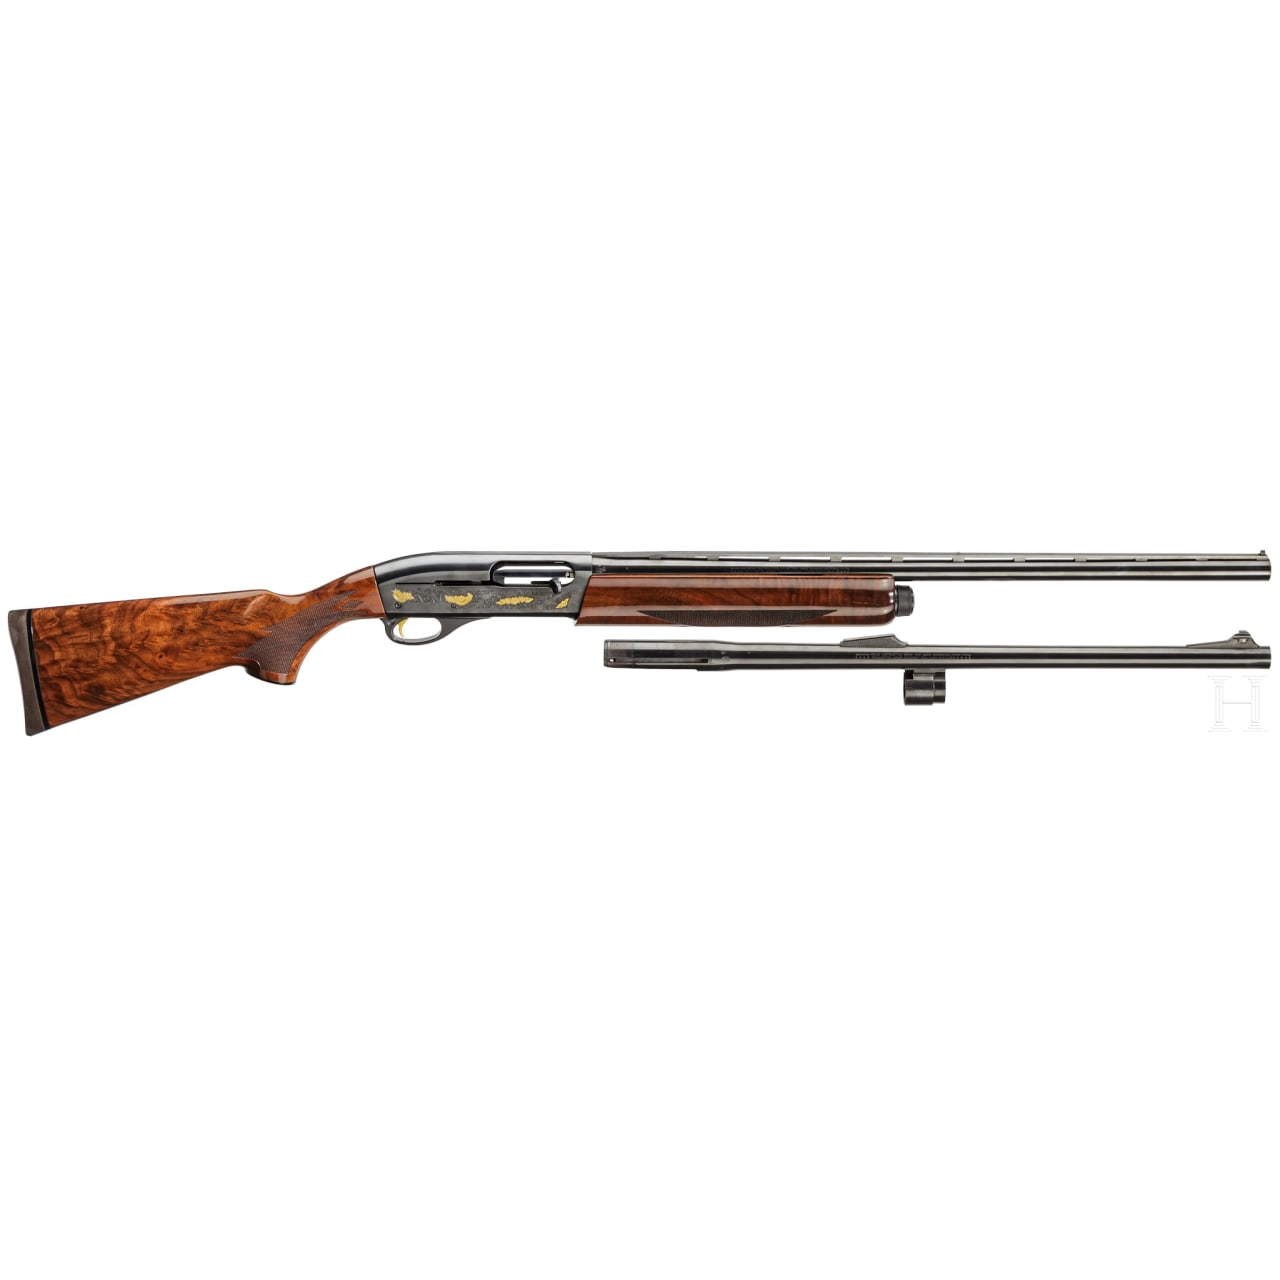 Remington Mod. 11-87 with extra barrel, No 3 of a 3-piece collector's set w/matching numbers, 180th year anniversary limited edition